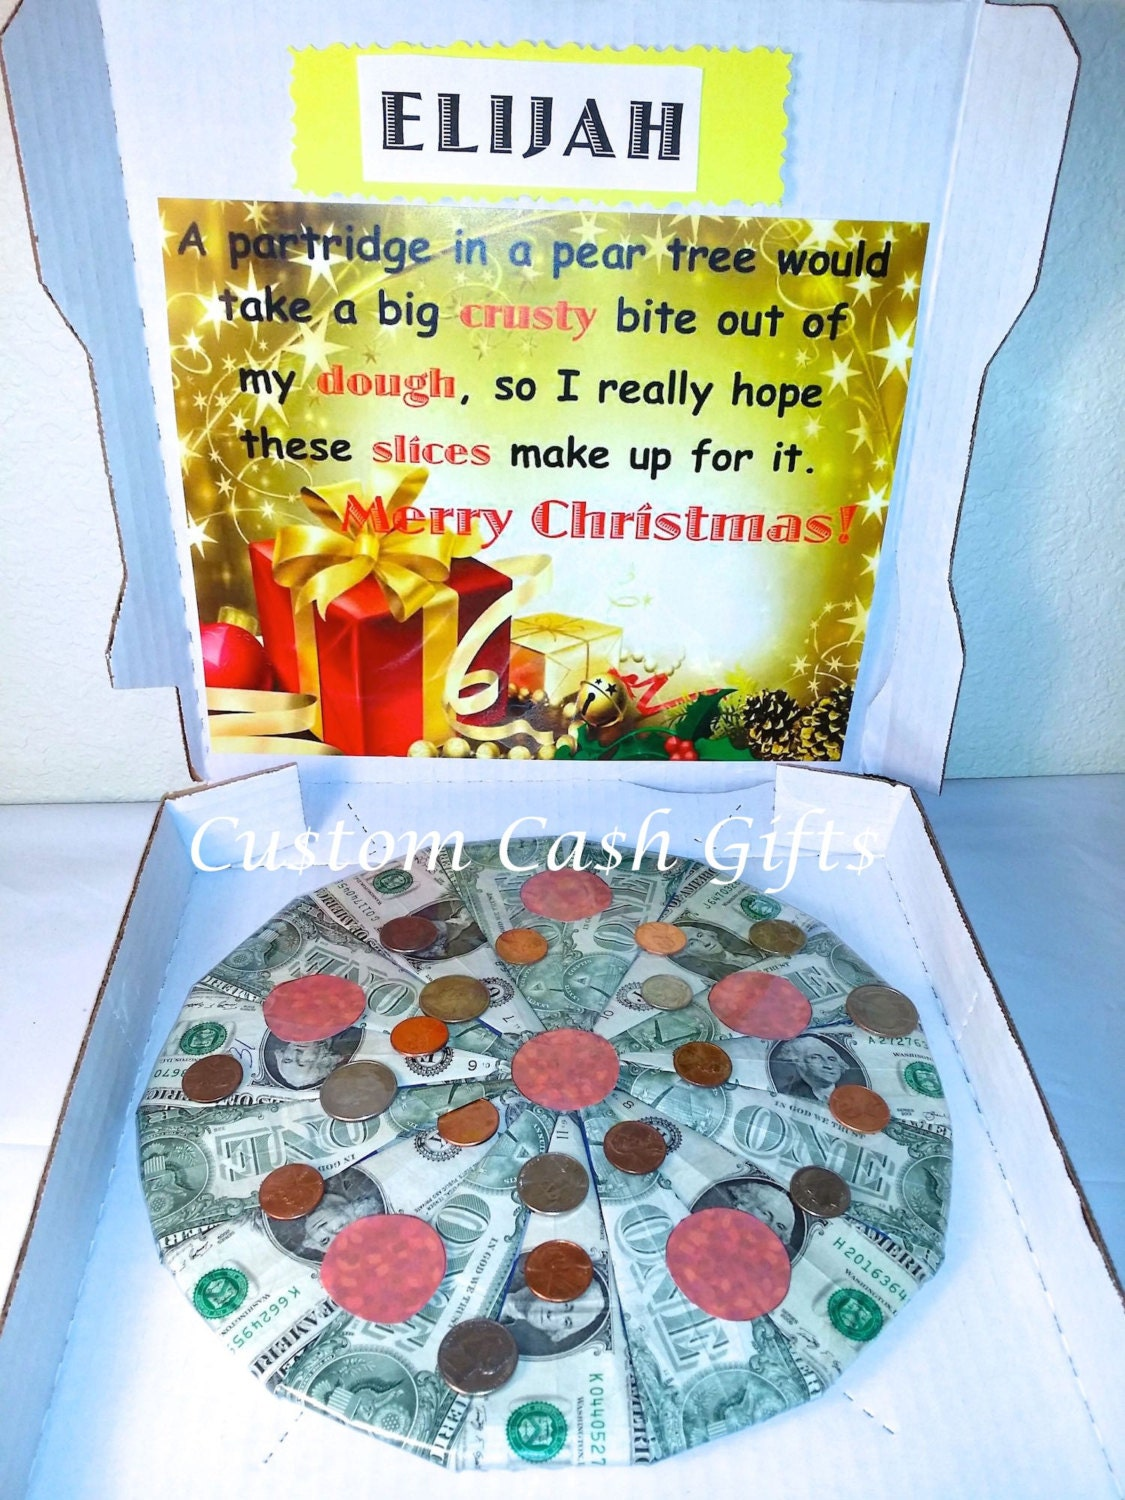 MONEY GIFT Made with Real Money. Merry Christmas